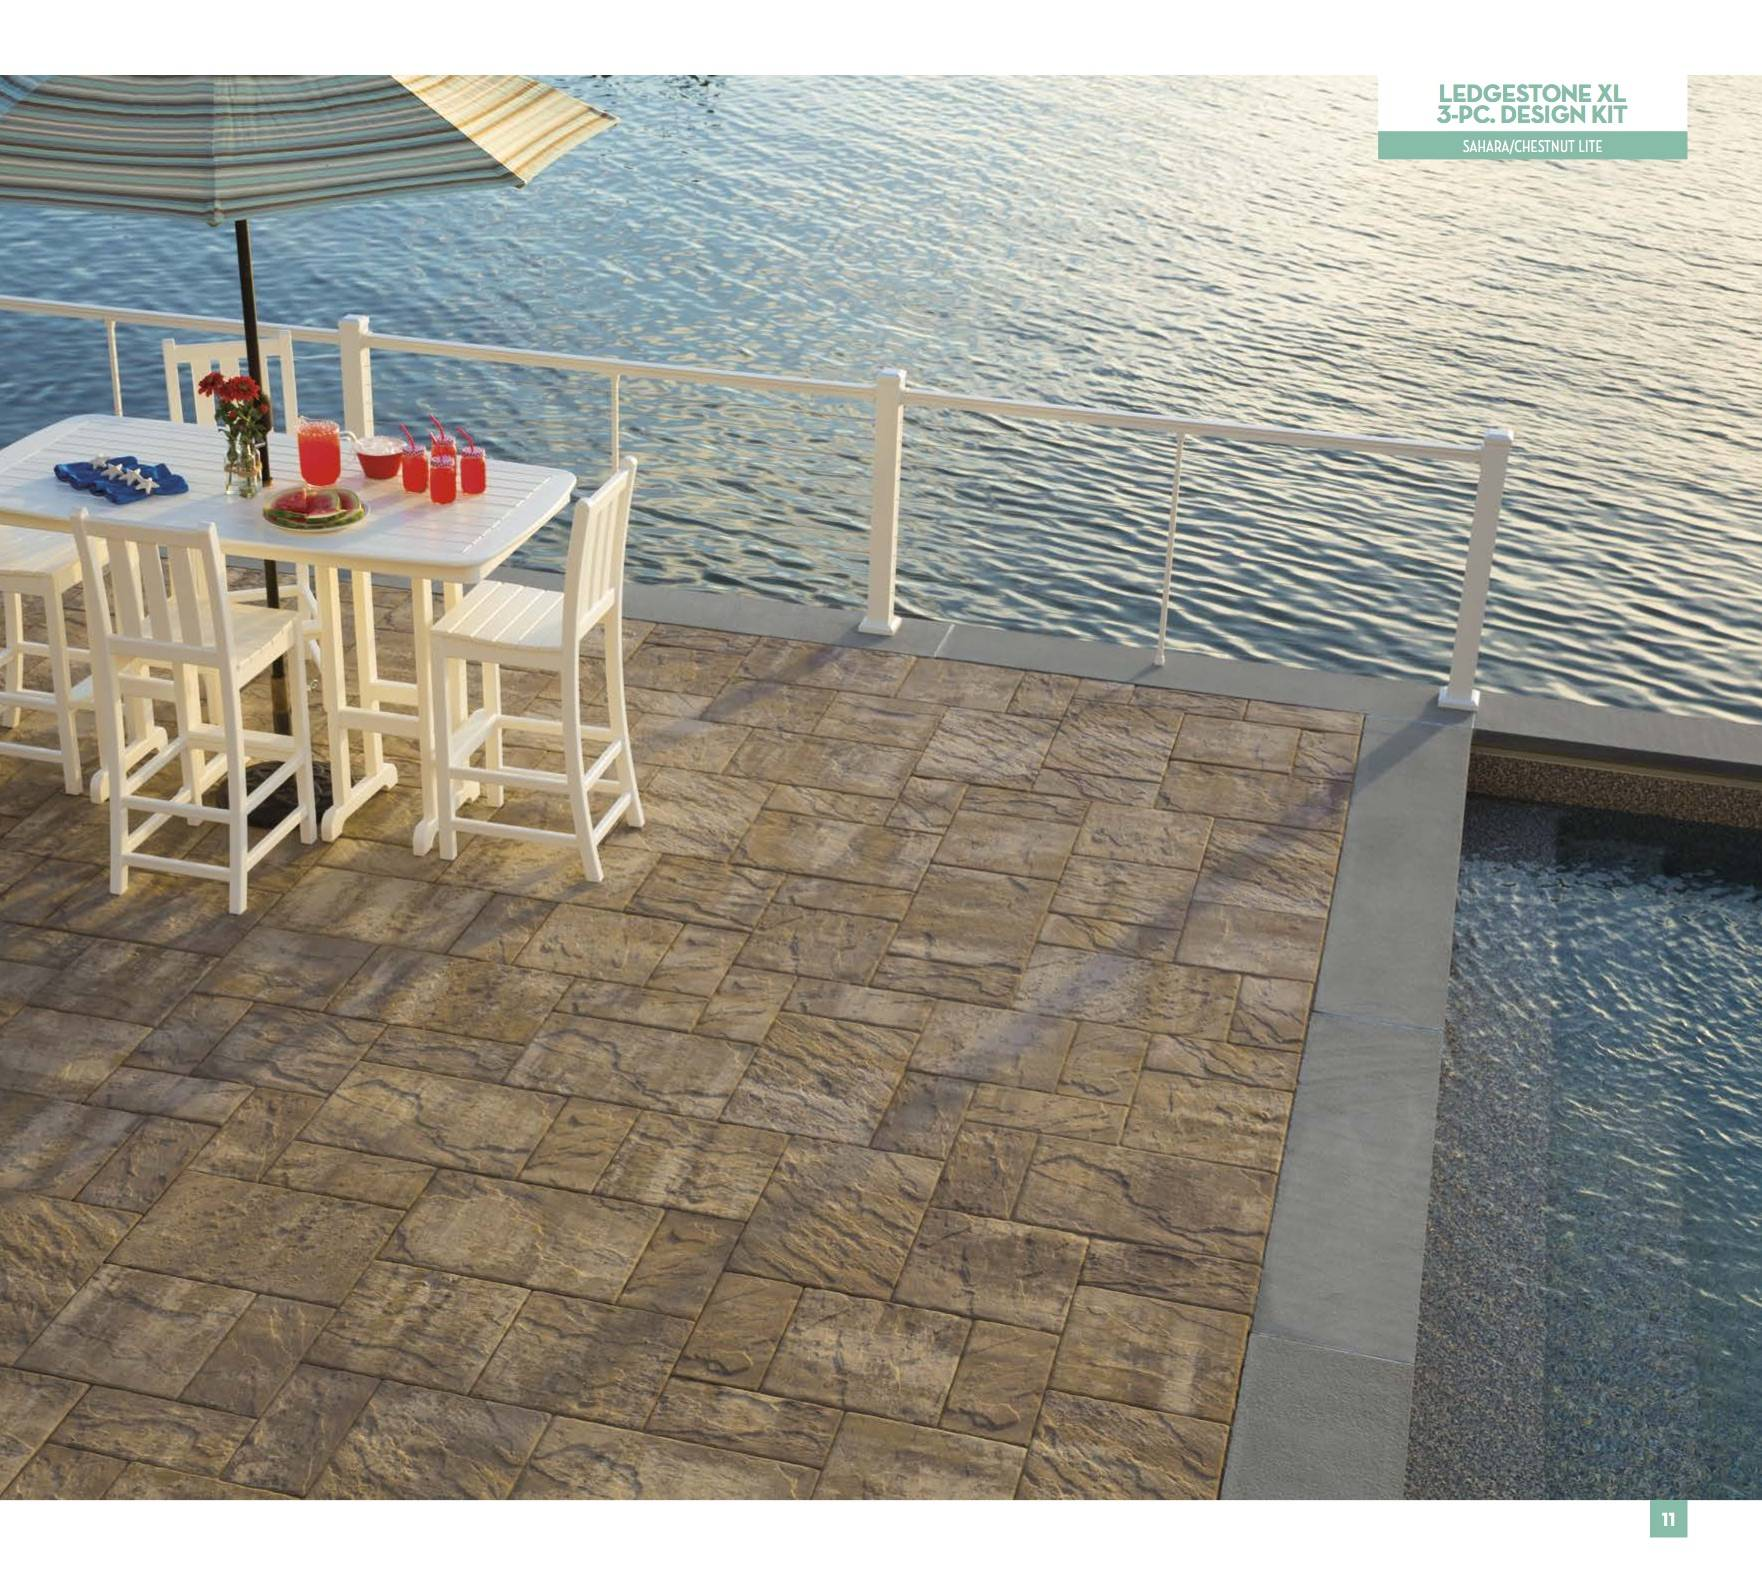 Pavers Cambridge Ledgestone XL 3 PC design Kit